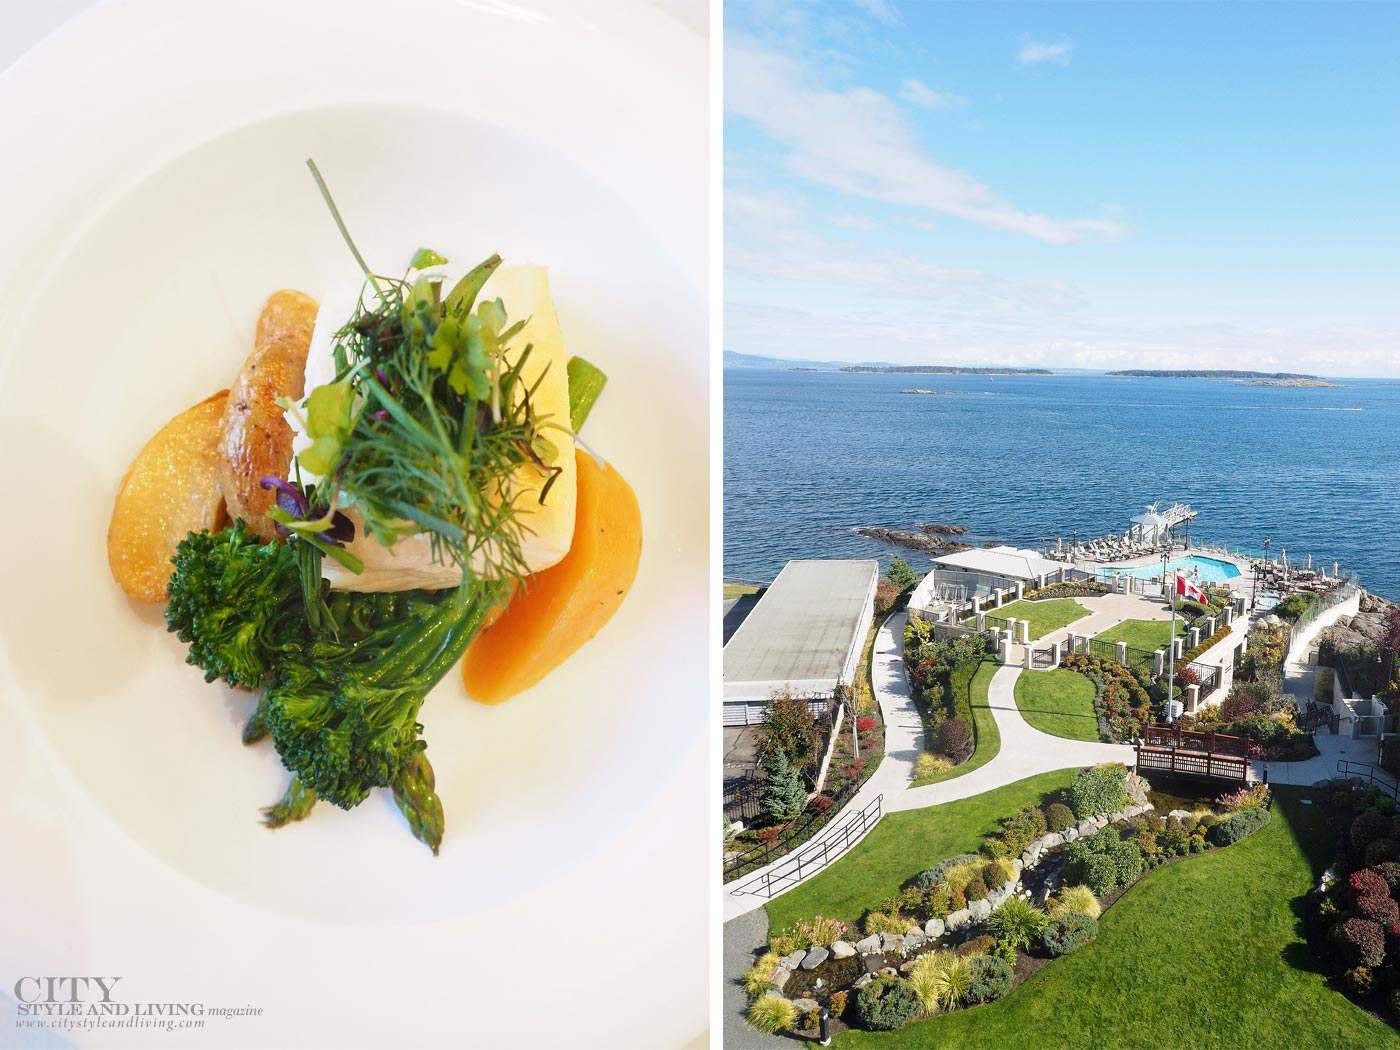 City Style and Living Magazine oak bay beach hotel victoria looks over the pacific ocean